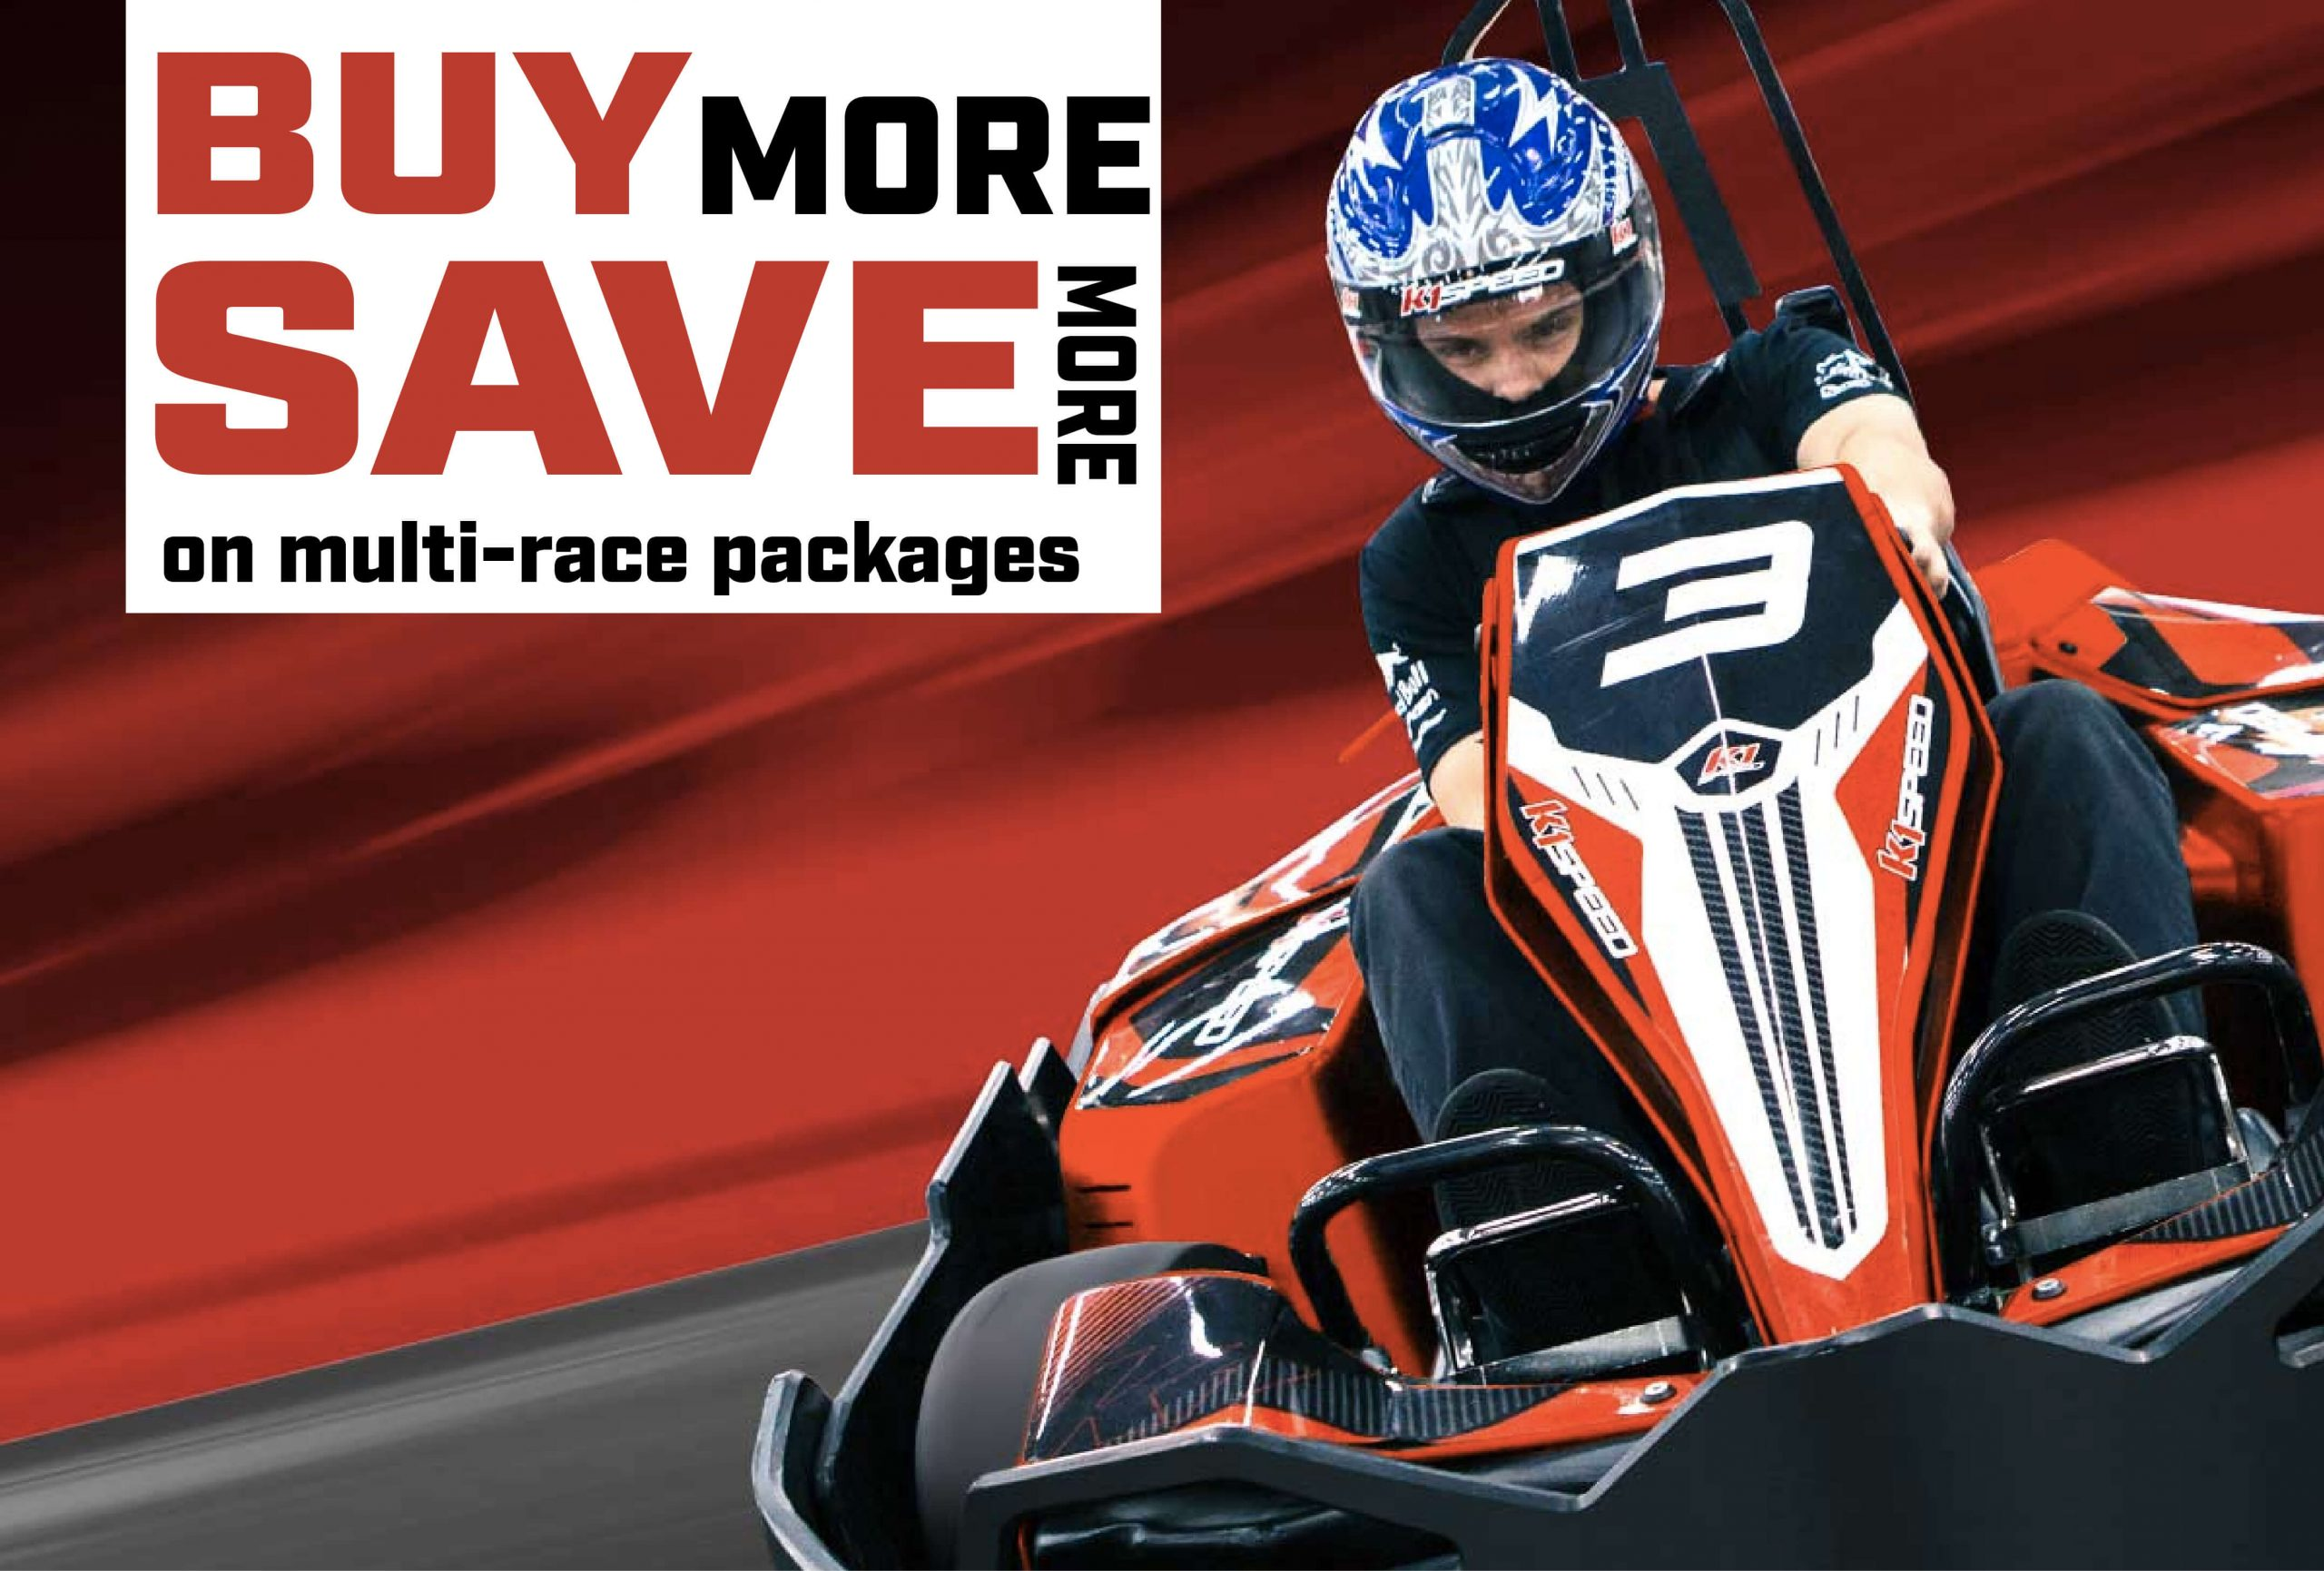 Buy More Save More Offer